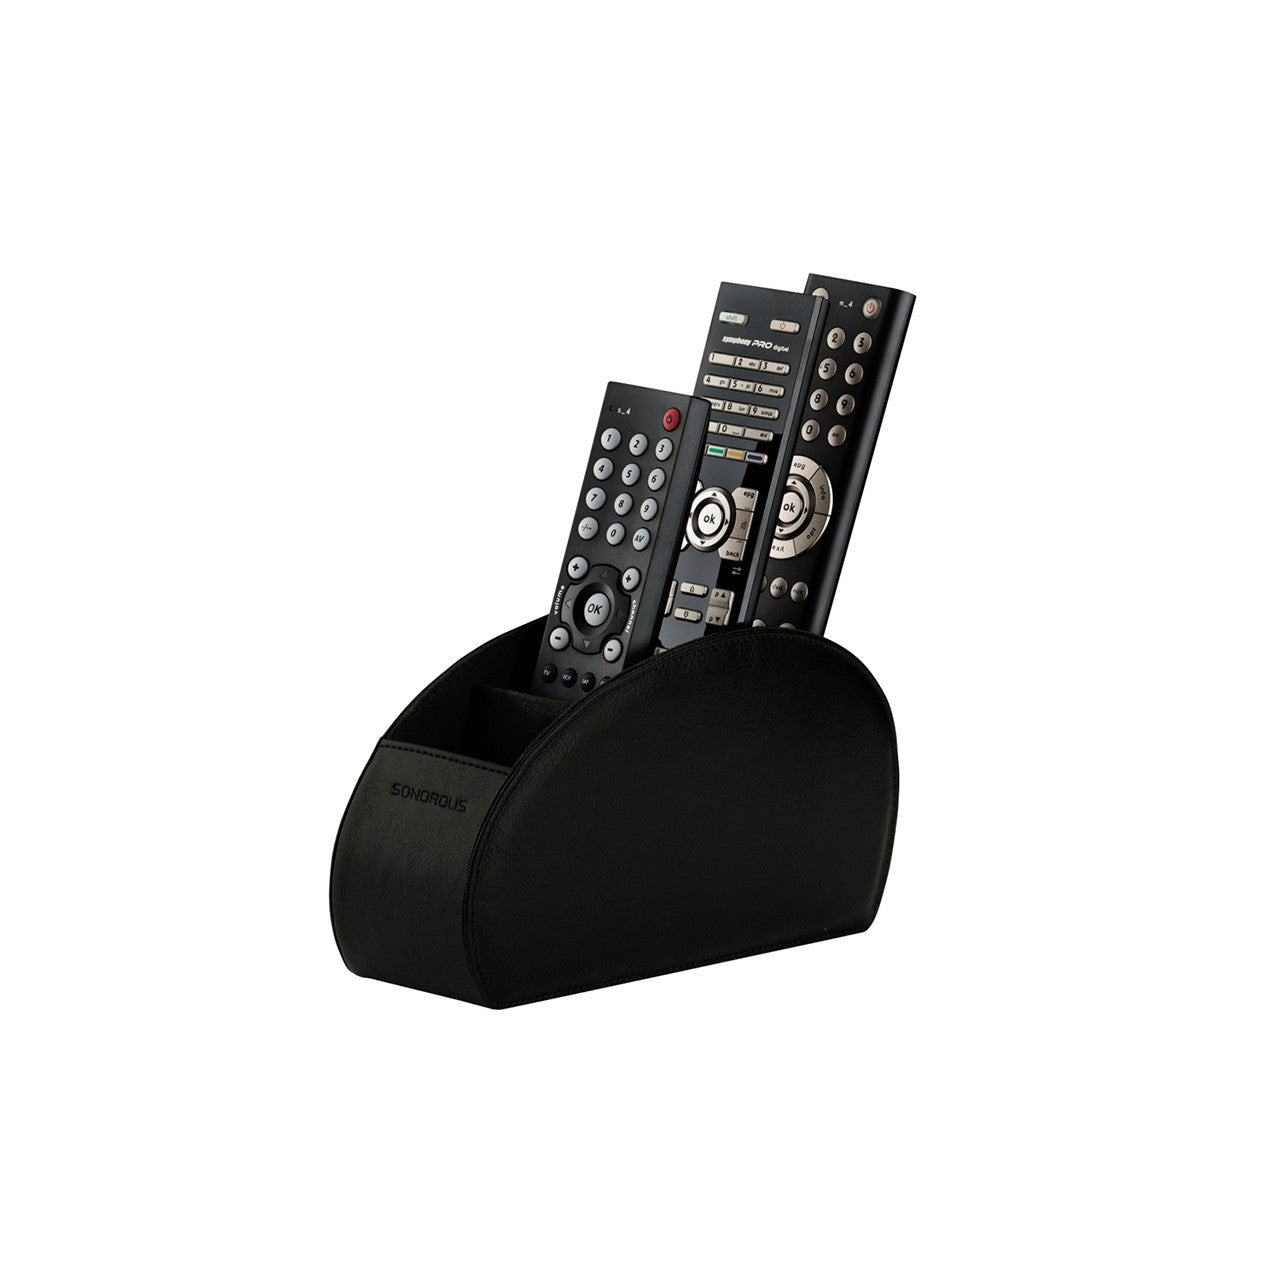 Sonorous Luxury Leather Remote Control Holder - Black